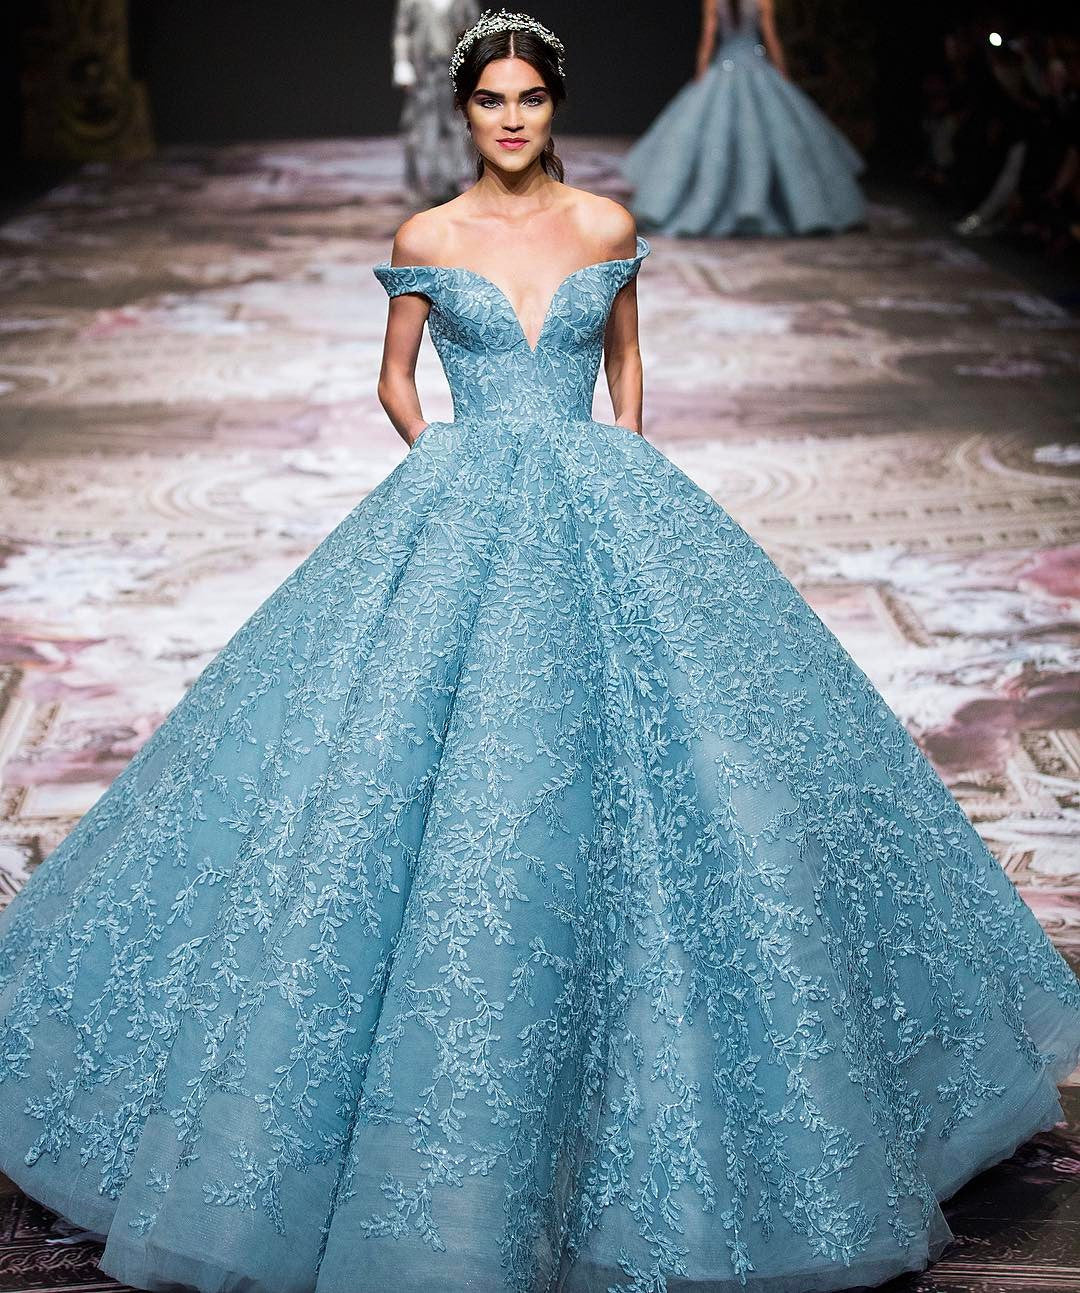 Aishwarya Rai Bachchan looked ethereal in a powder-blue brocade ball gown by Michael Cinco